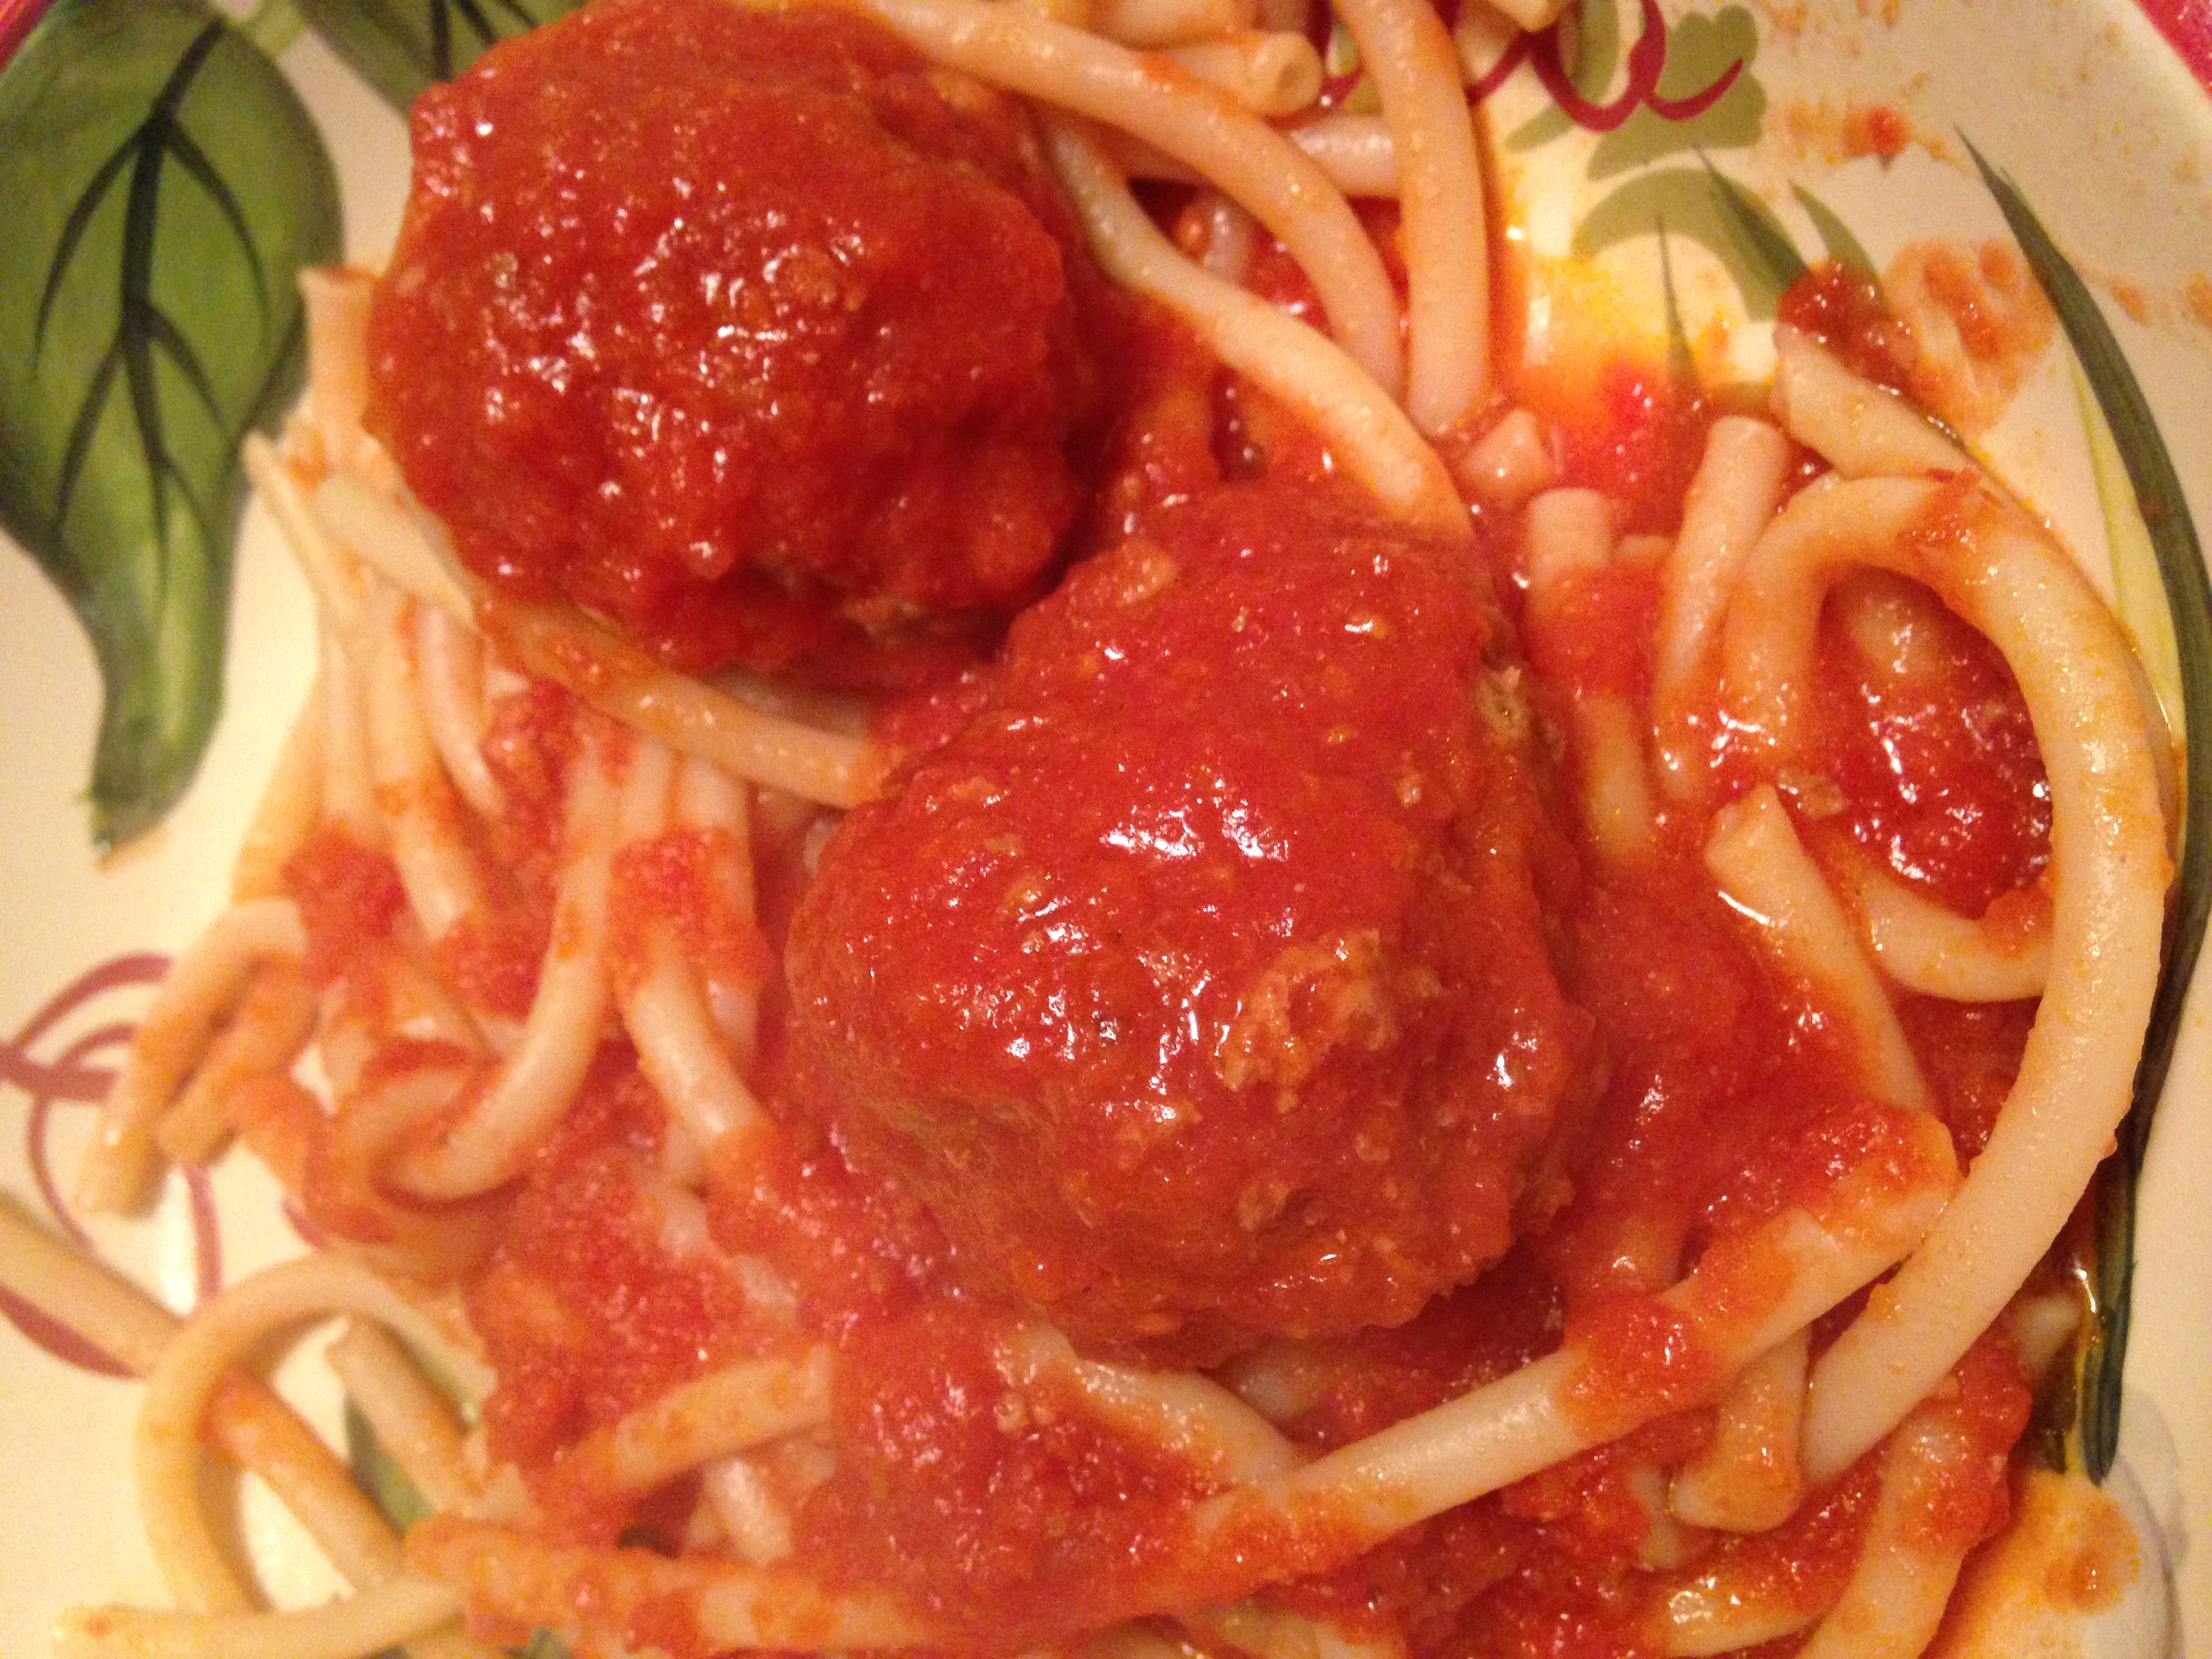 This Mama's Meatballs